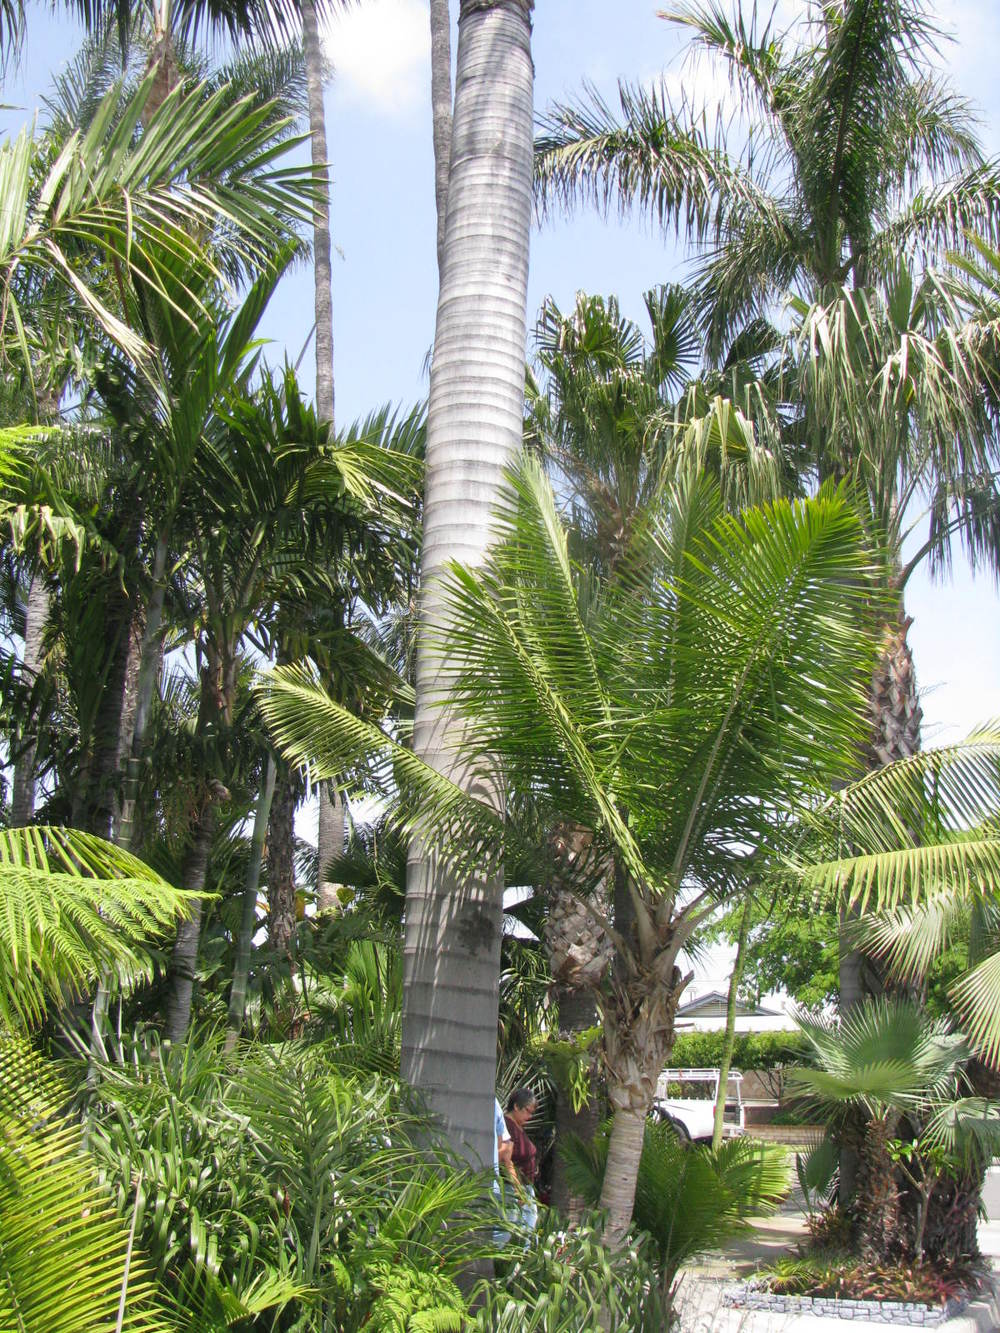 These palms have been around a while, some for more than 40 years.